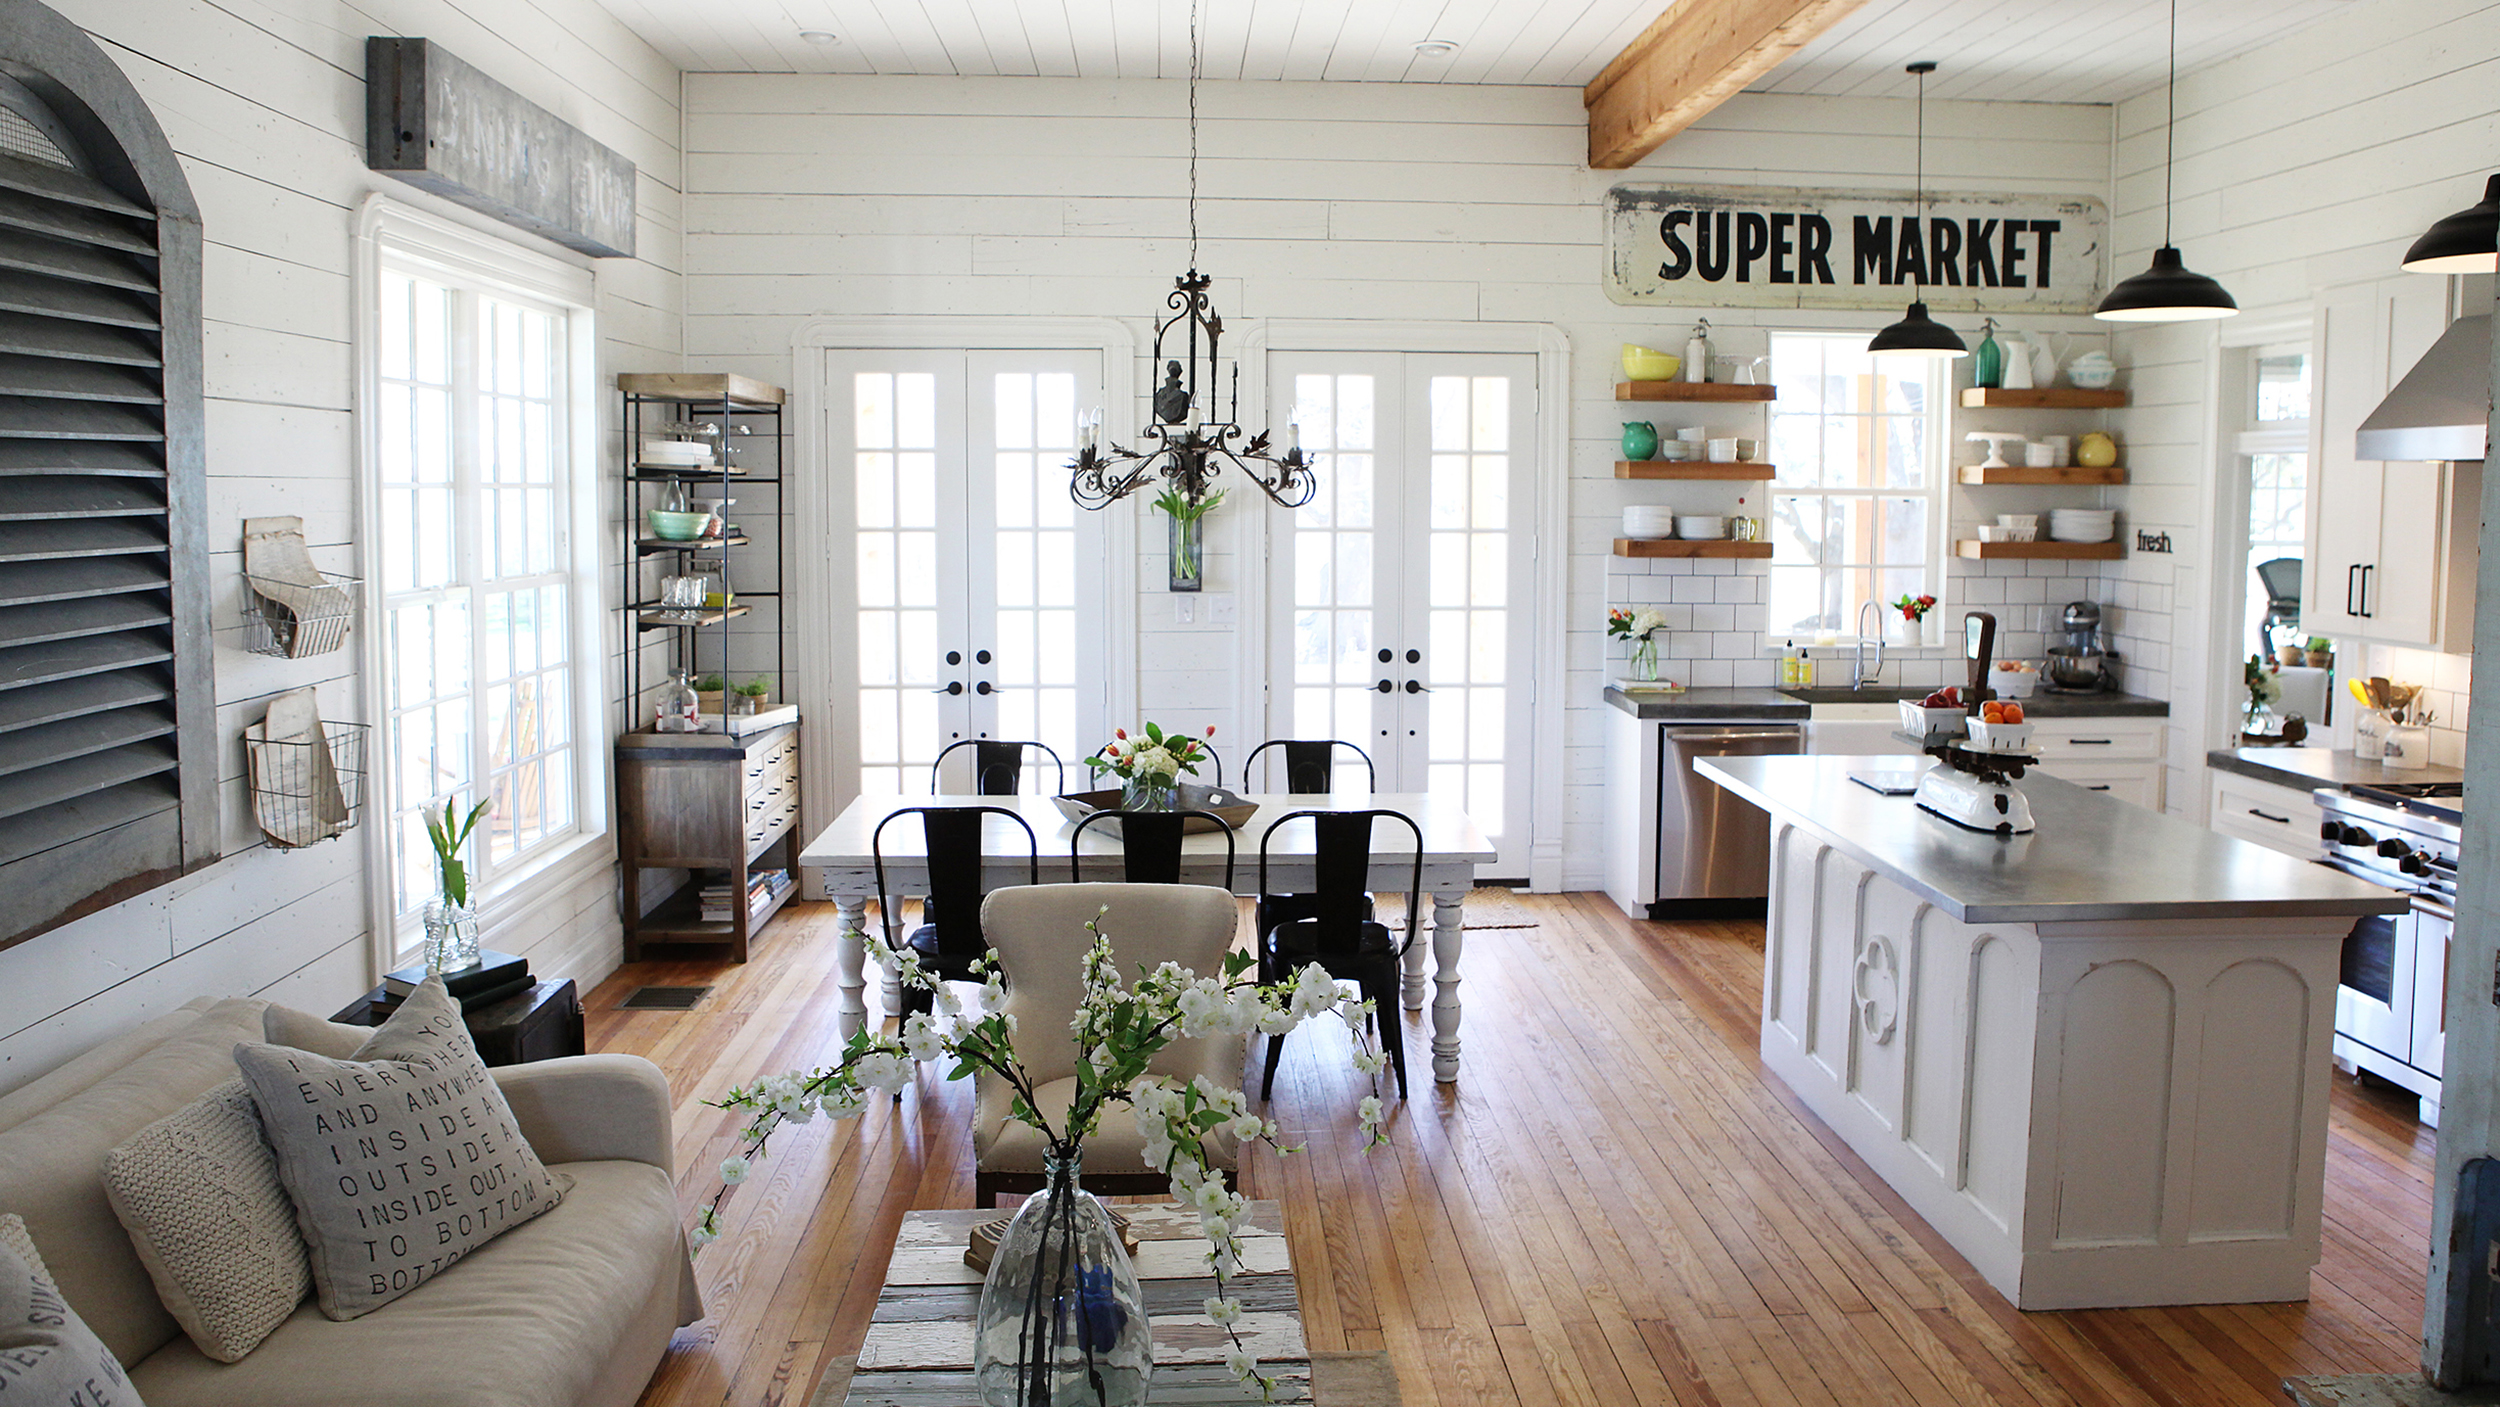 chip and joanna gaines 39 fixer upper 39 home tour in waco